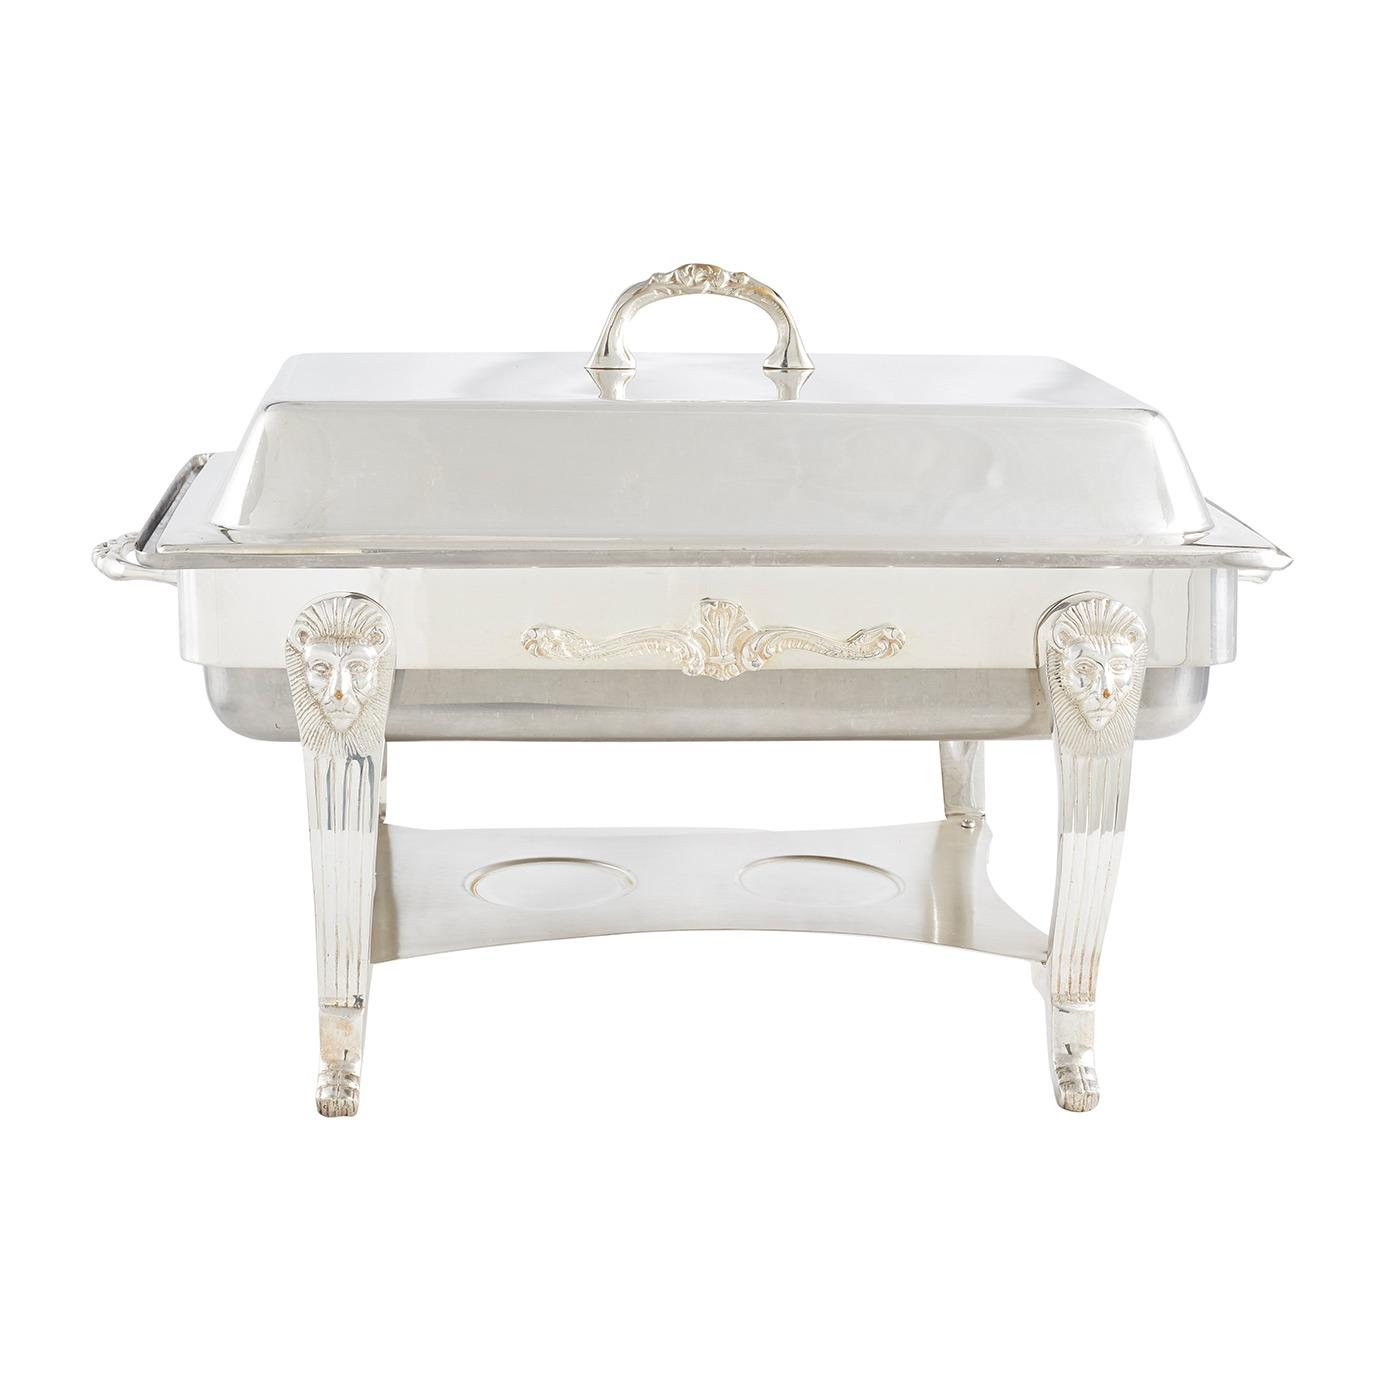 Silver Chafer - Oblong 8 Quart